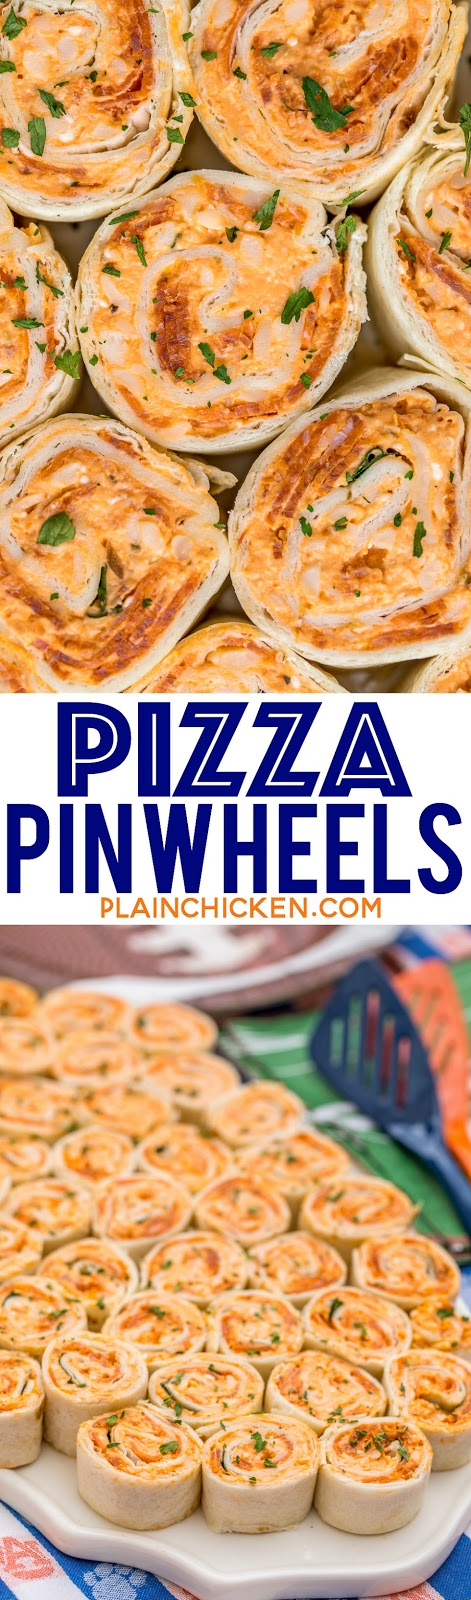 Pizza Pinwheels Recipe - I am ADDICTED to these sandwiches! Cream cheese, pizza sauce, mozzarella cheese and pepperoni wrapped in a tortilla. Can make ahead of time and refrigerate until ready to eat. Perfect for parties and tailgating!!